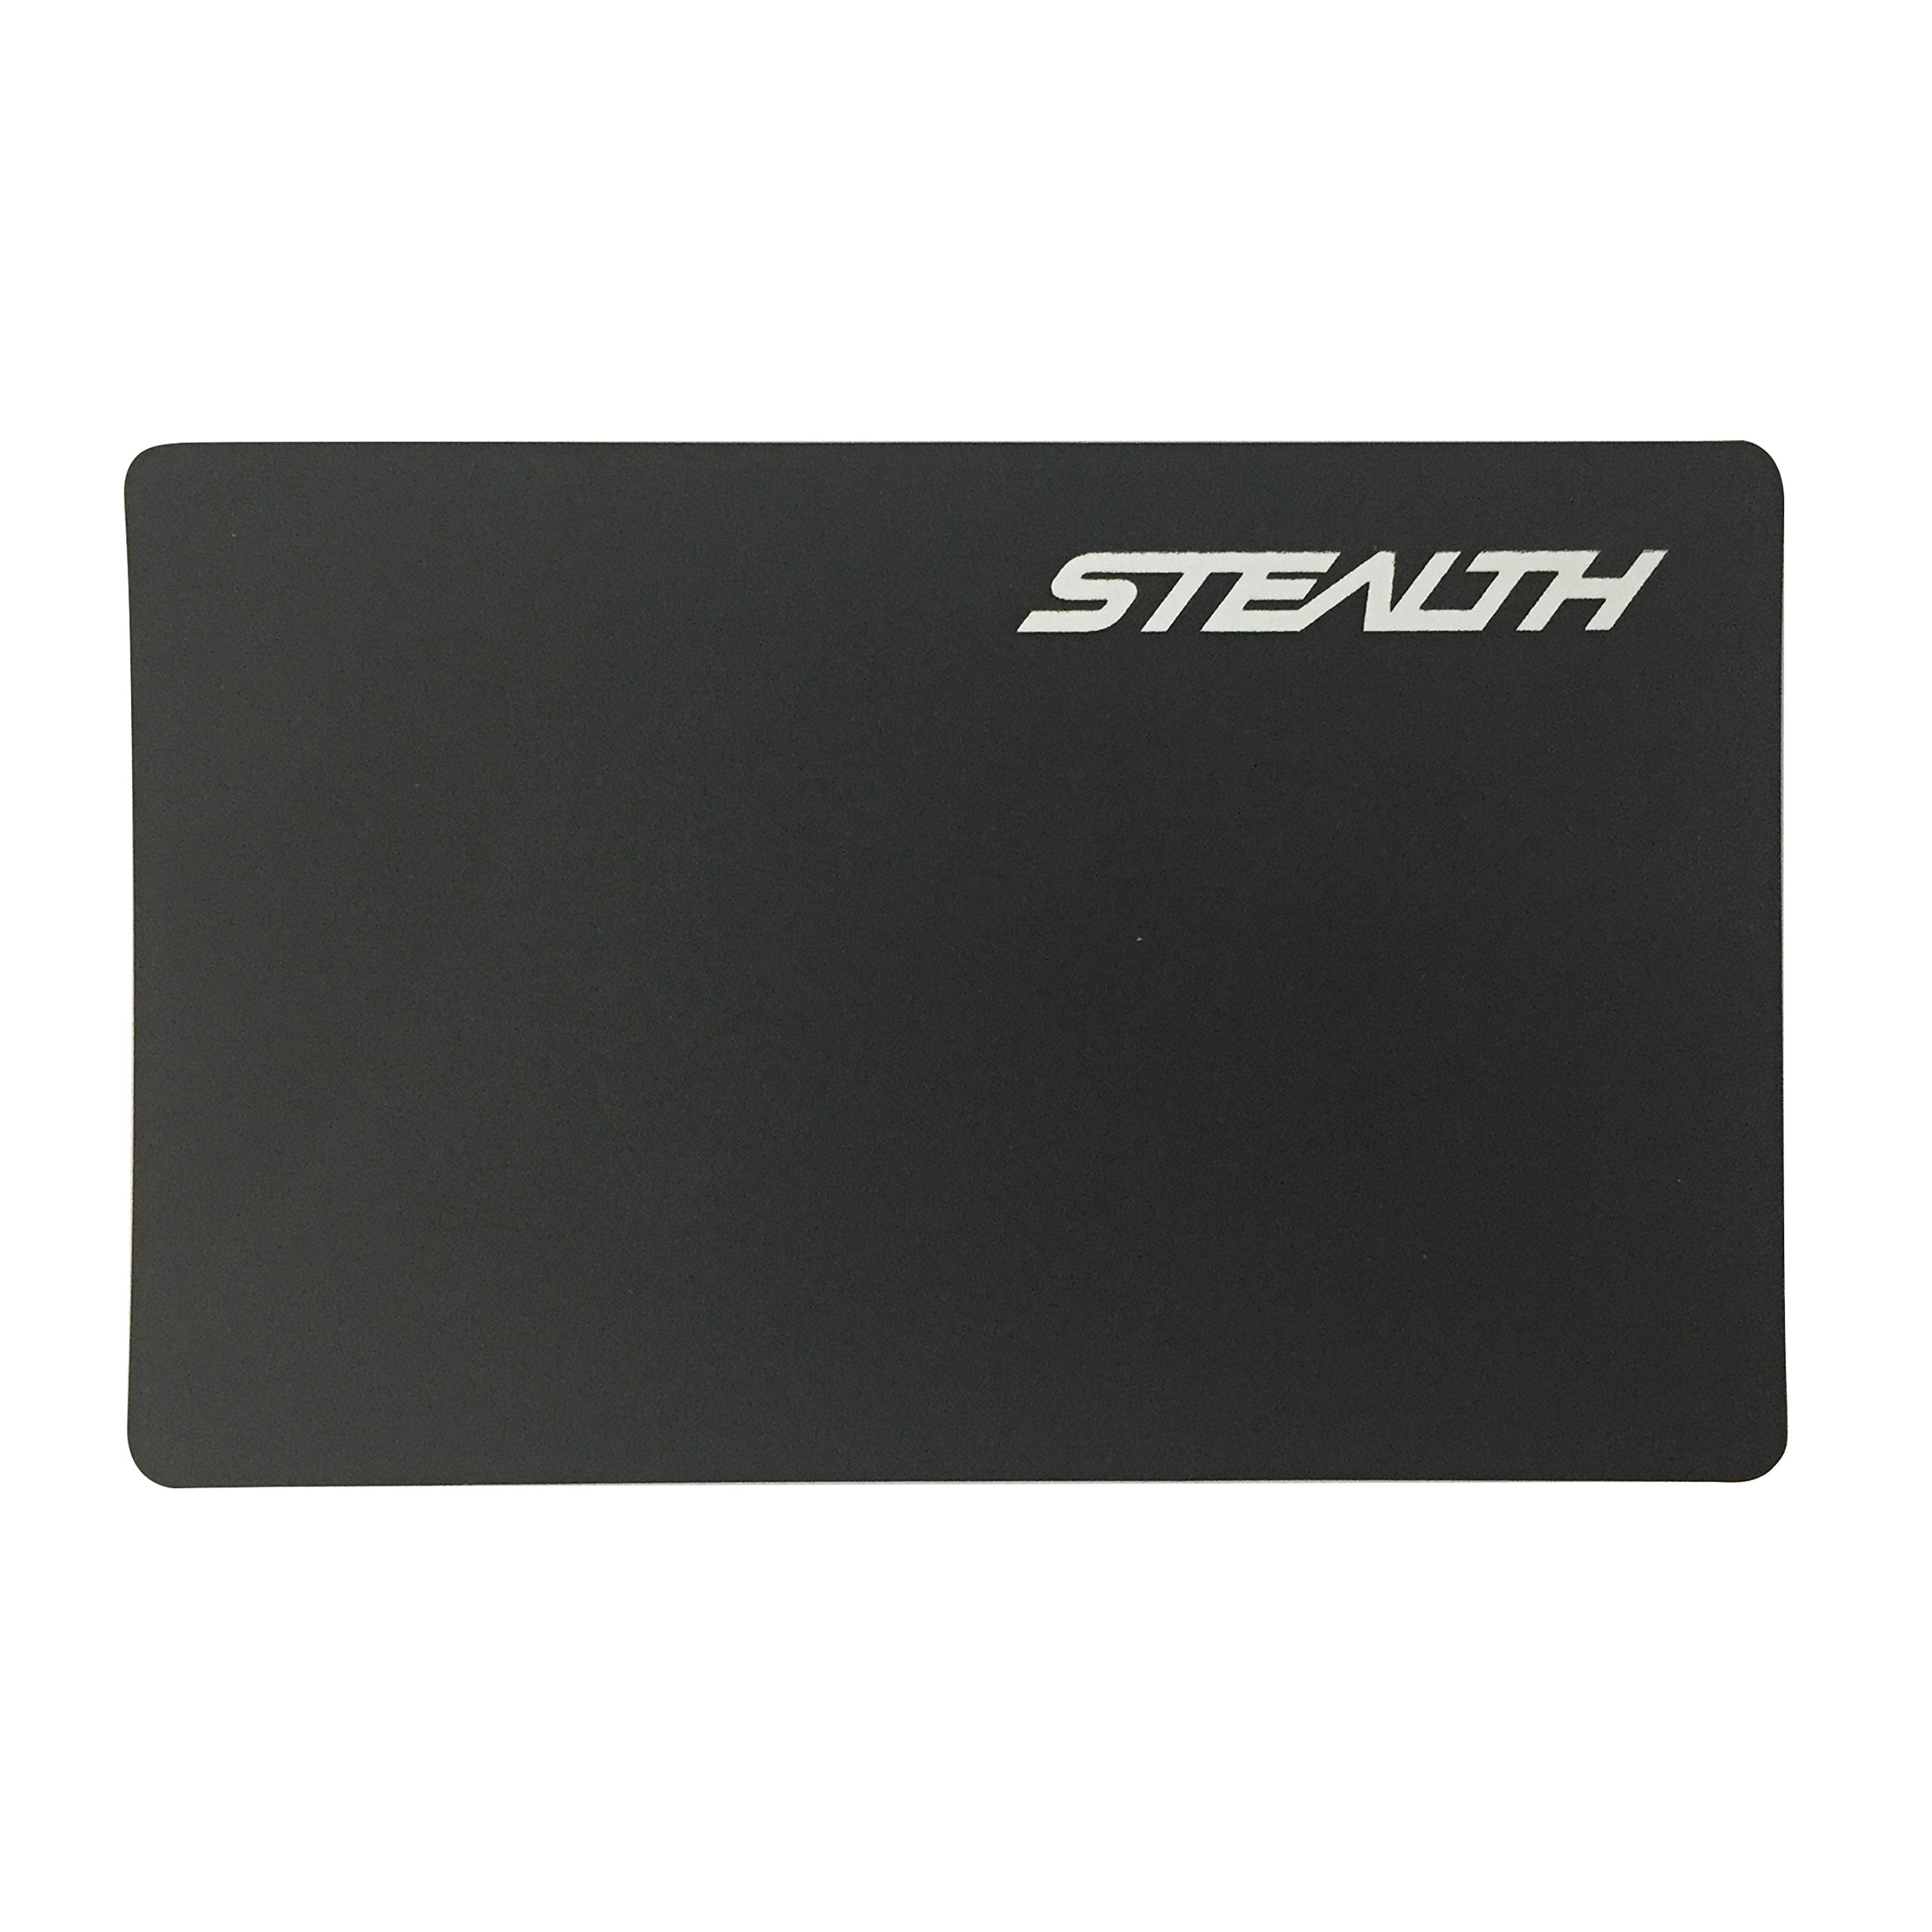 Stealth Card RFID Blocker Card - Identity Protection Card for Id's, Passports and Chip Bank Cards - 1 Stealth RFID Wallet Insert Card Protects Up to 12 Chipped Credit Cards (Black)